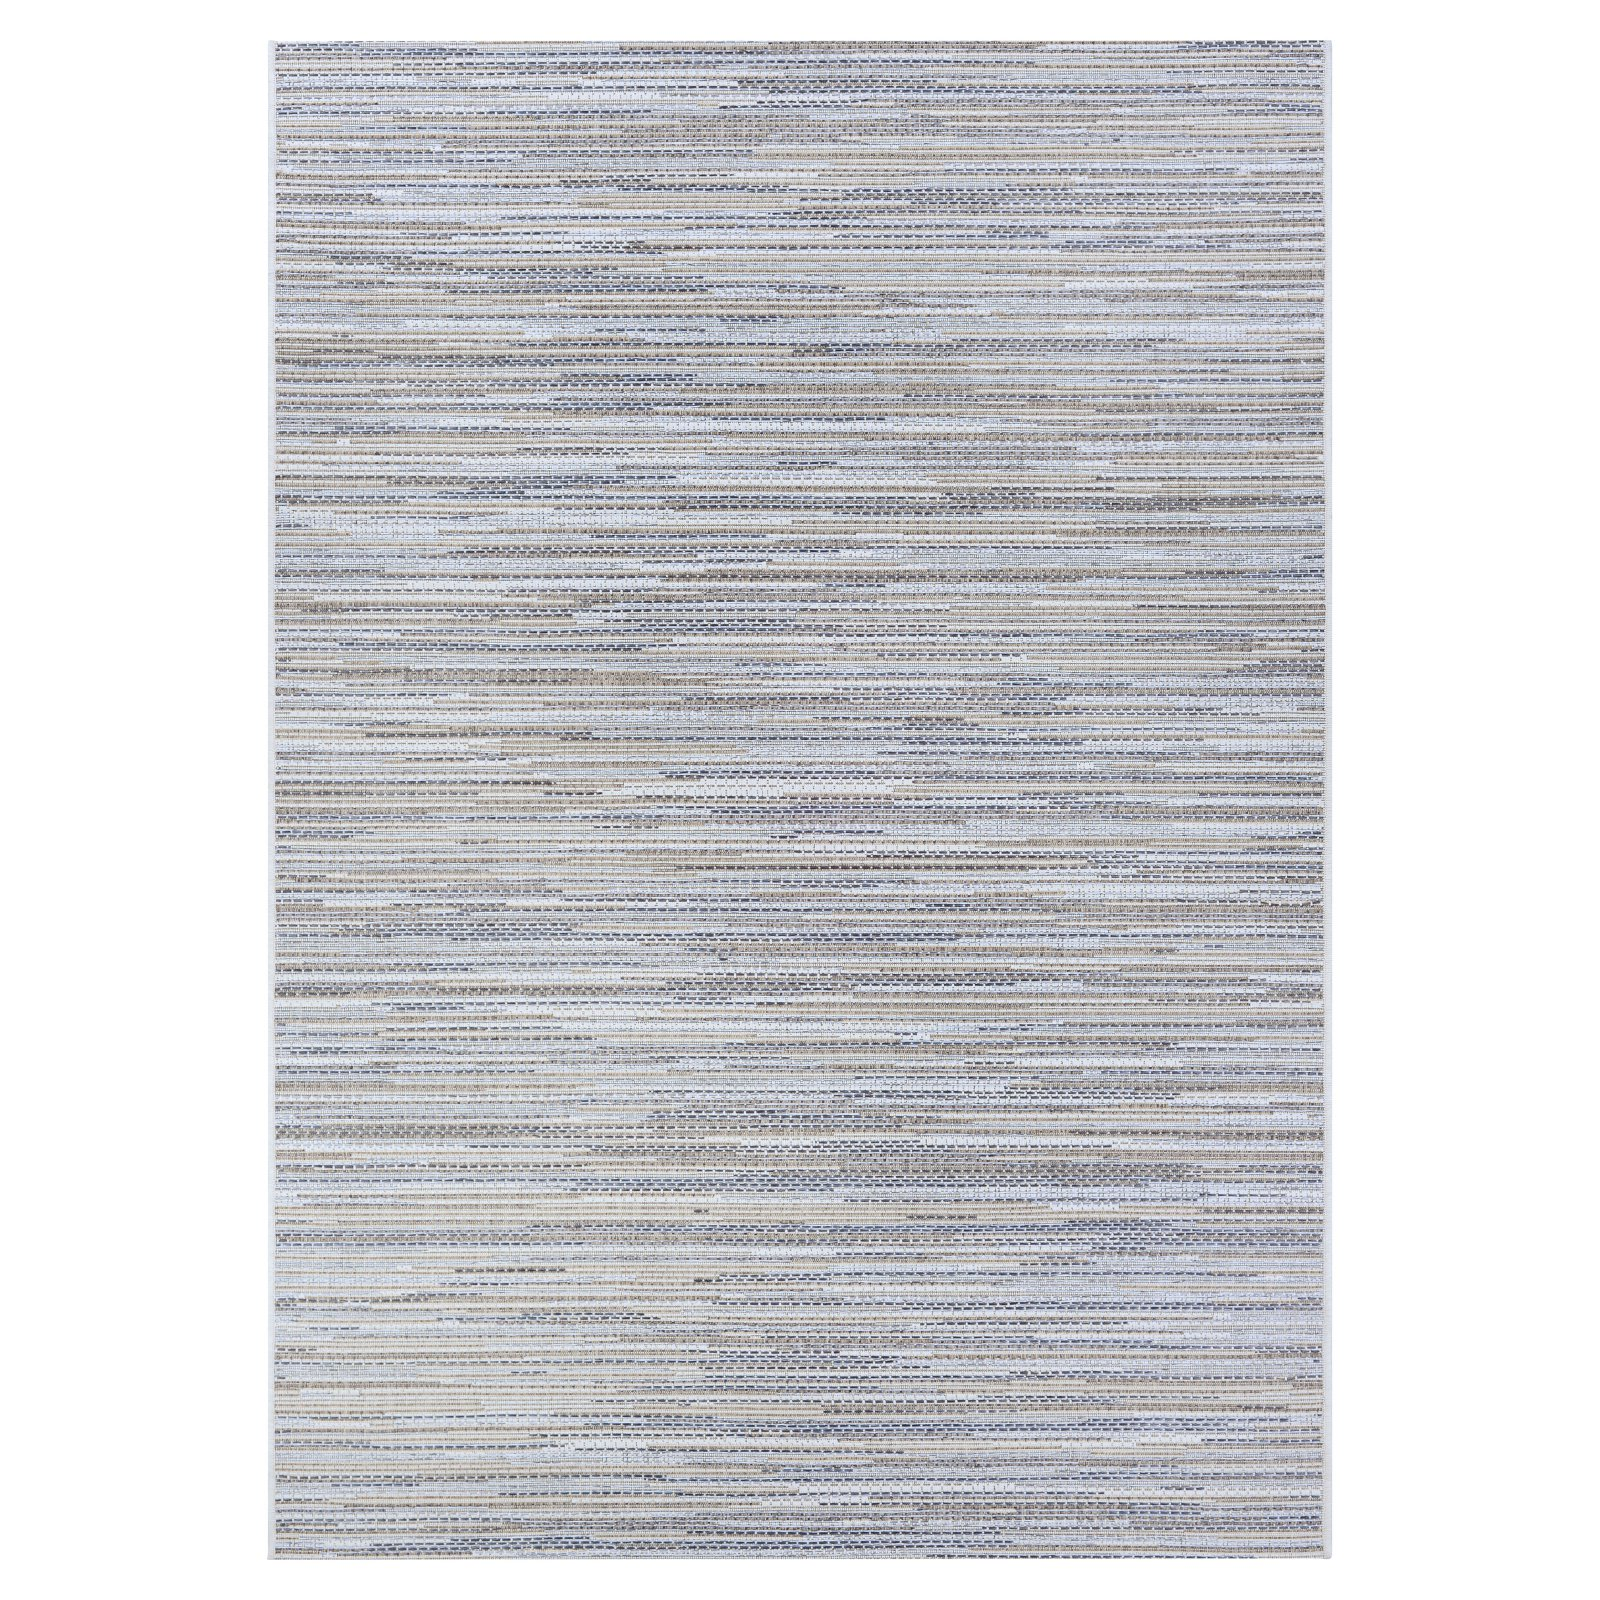 Couristan Monte Carlo Coastal Breeze Taupe-Champagne Indoor/Outdoor Area Rug